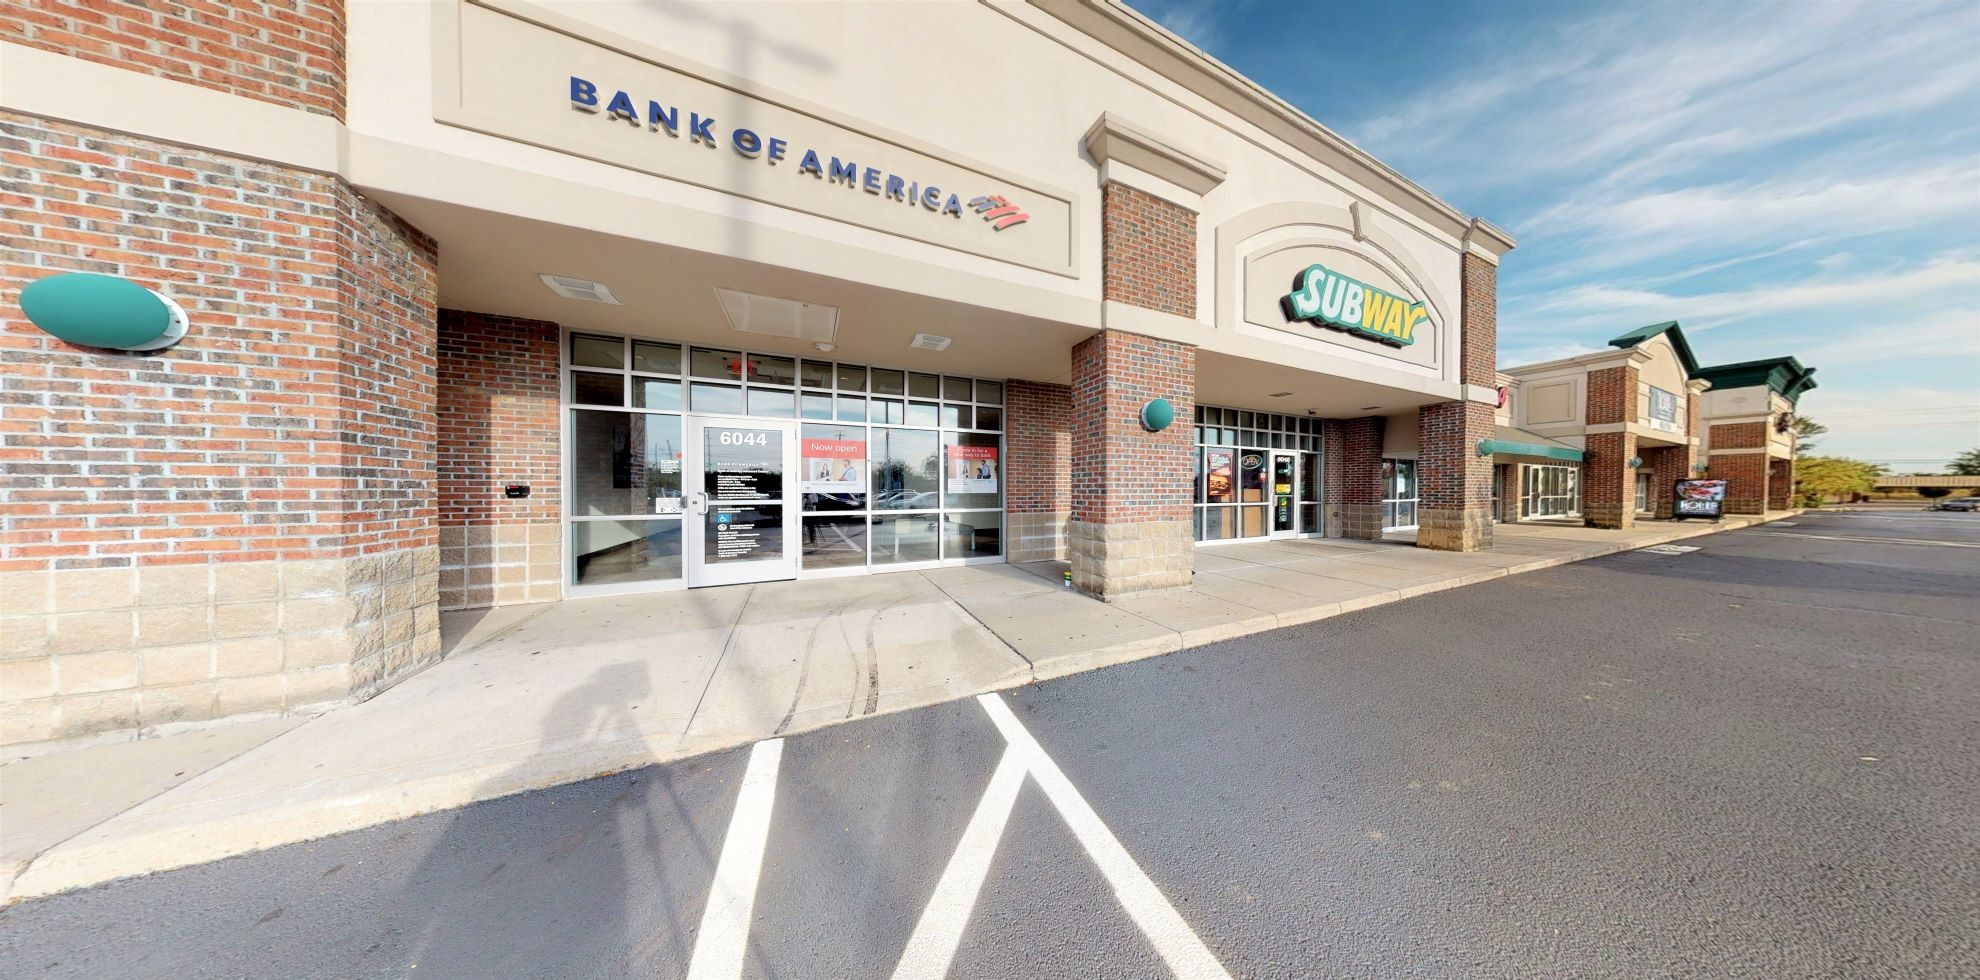 Bank of America Advanced Center with walk-up ATM   6044 State Rd 48, Maineville, OH 45039